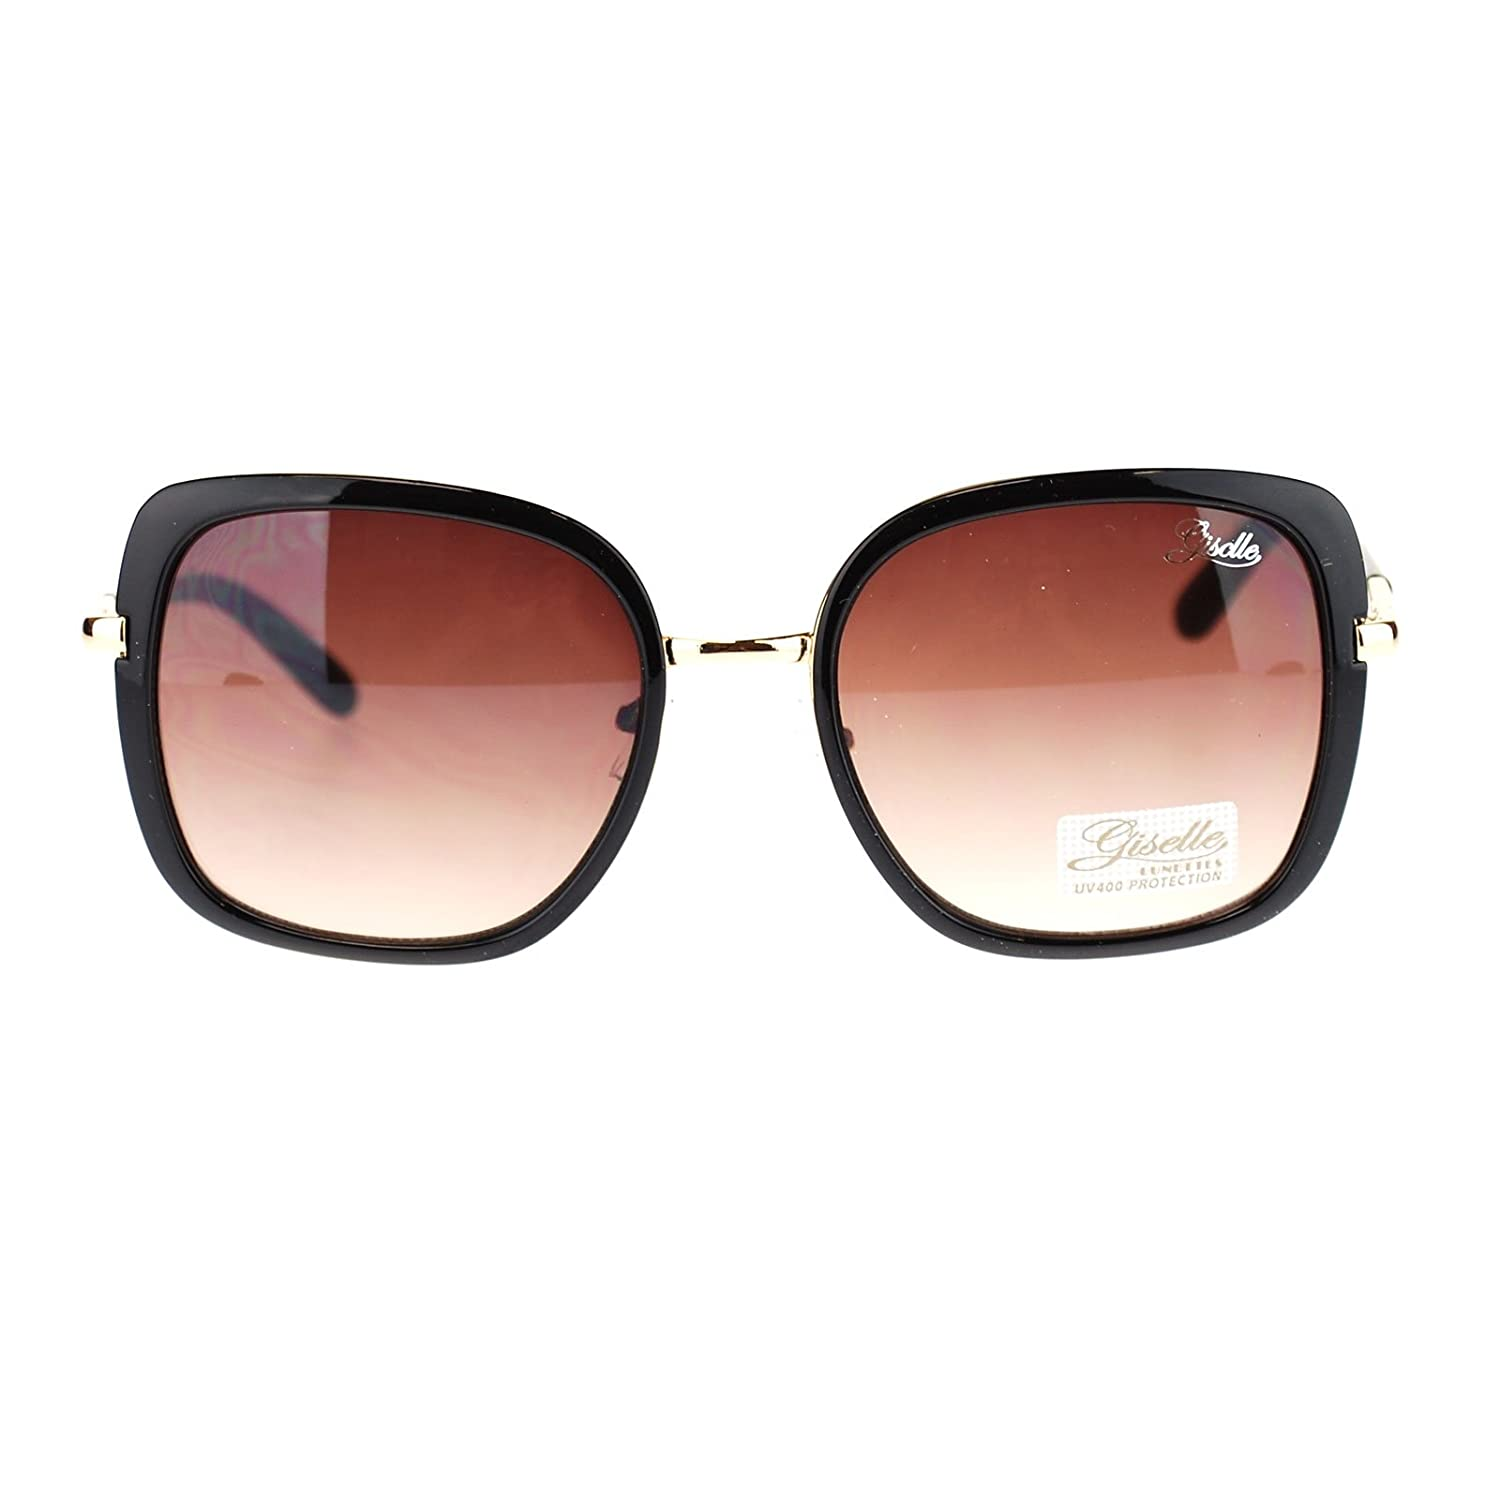 9f77a81df2019 Amazon.com  Designer Square Frame Sunglasses Womens Vintage Look Eyewear  Black  Clothing